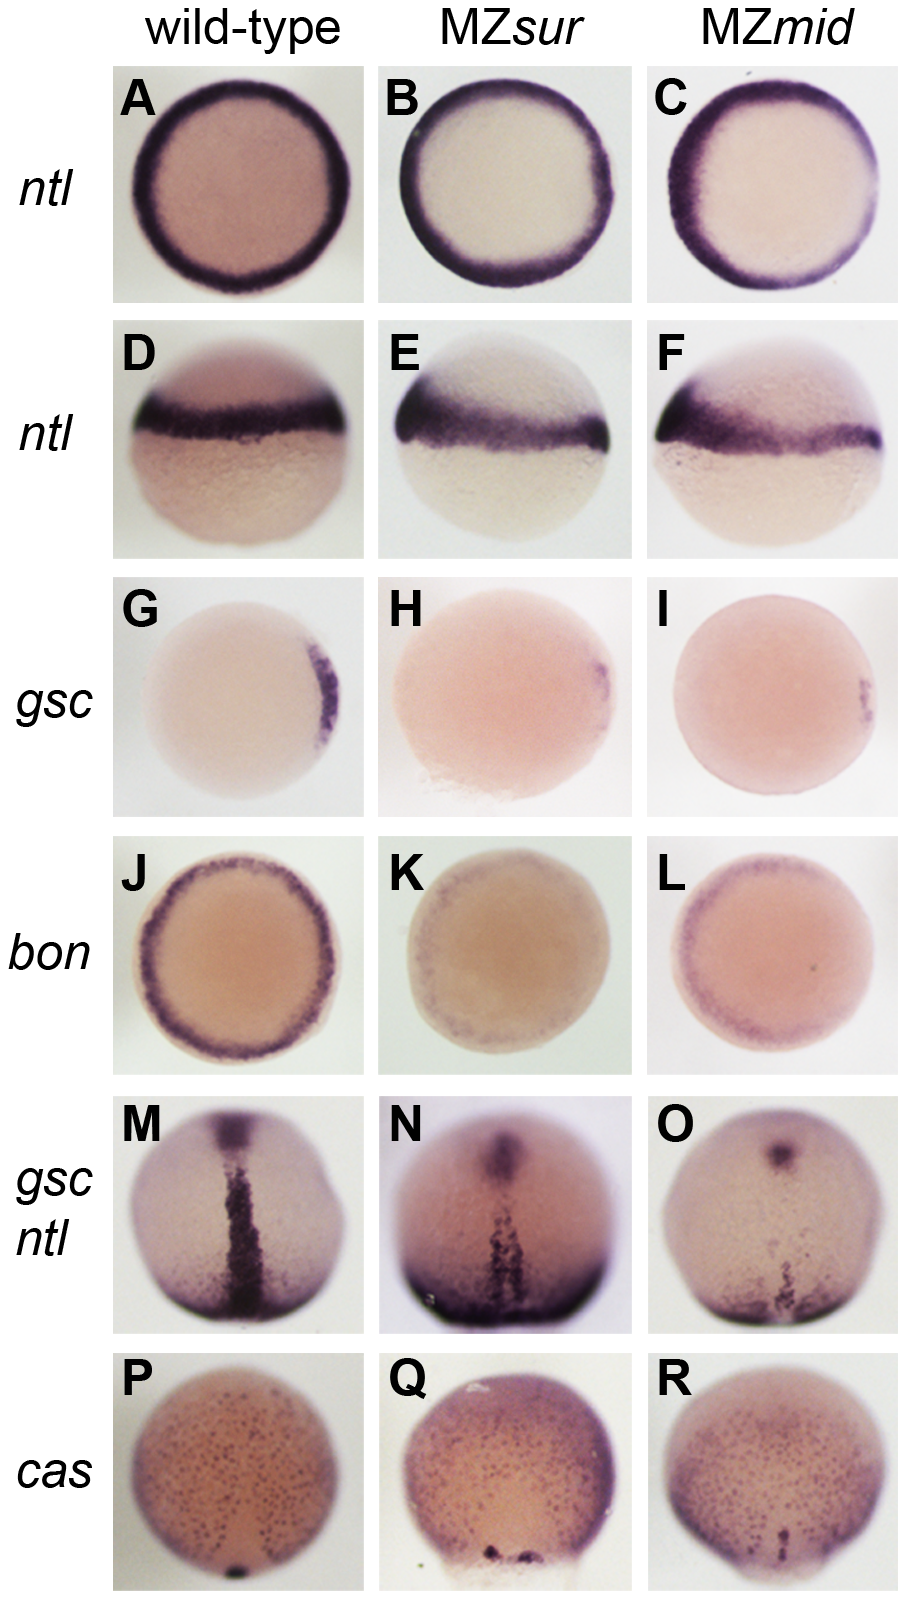 Nodal-dependent tissue specification is differentially disrupted in <i>FoxH1</i> mutants.